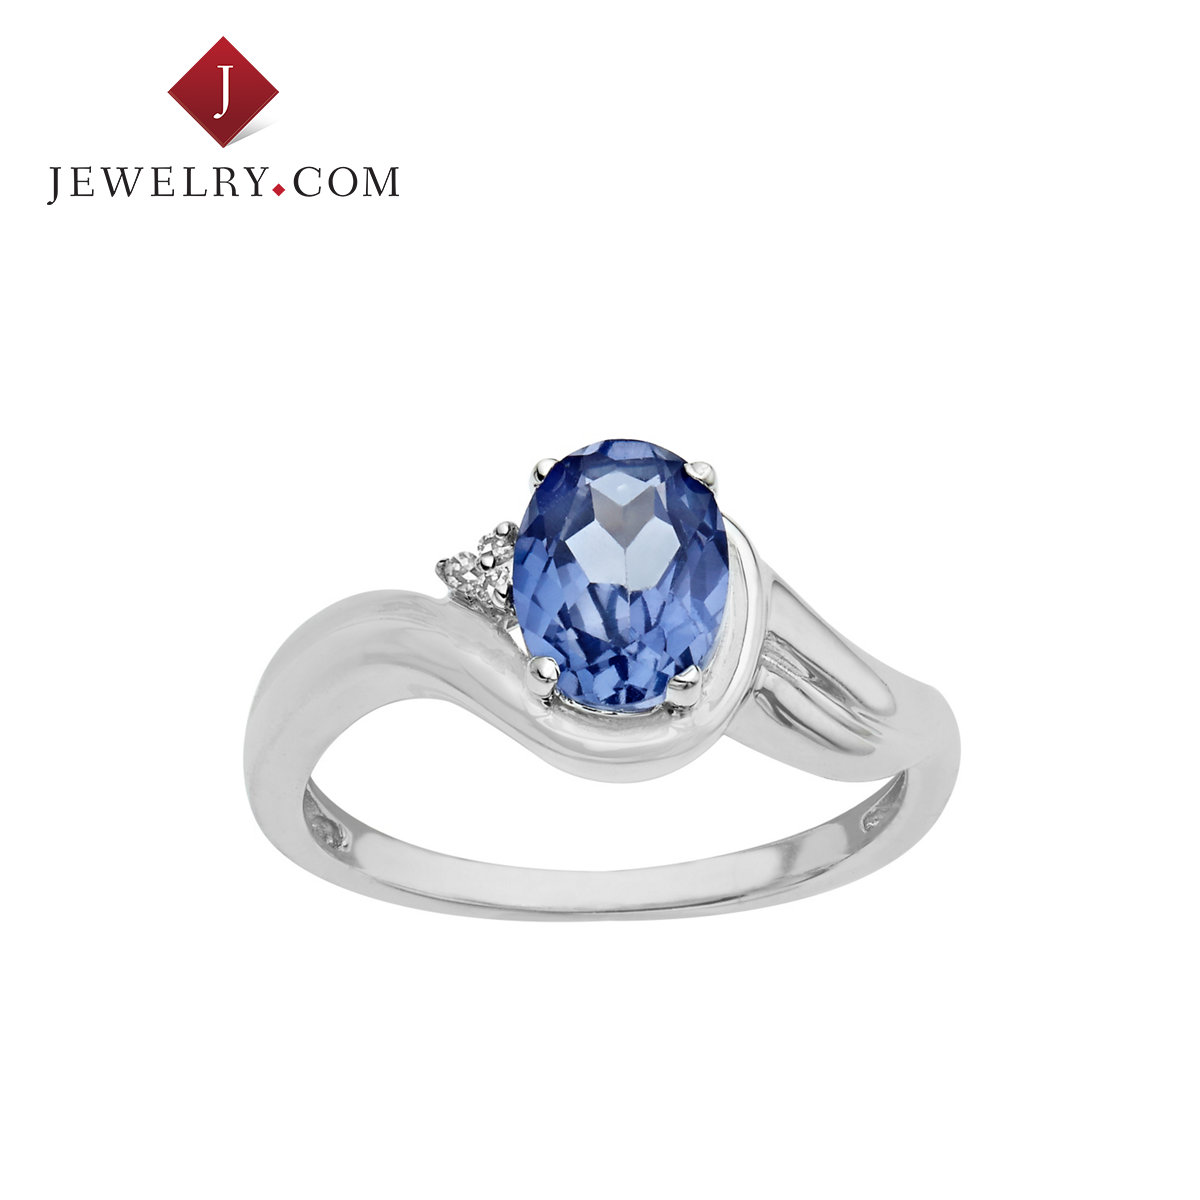 Jewelry.com official crispp and chic and elegant inlaid sapphire diamond nvjie 925 sterling silver 1.875 karat